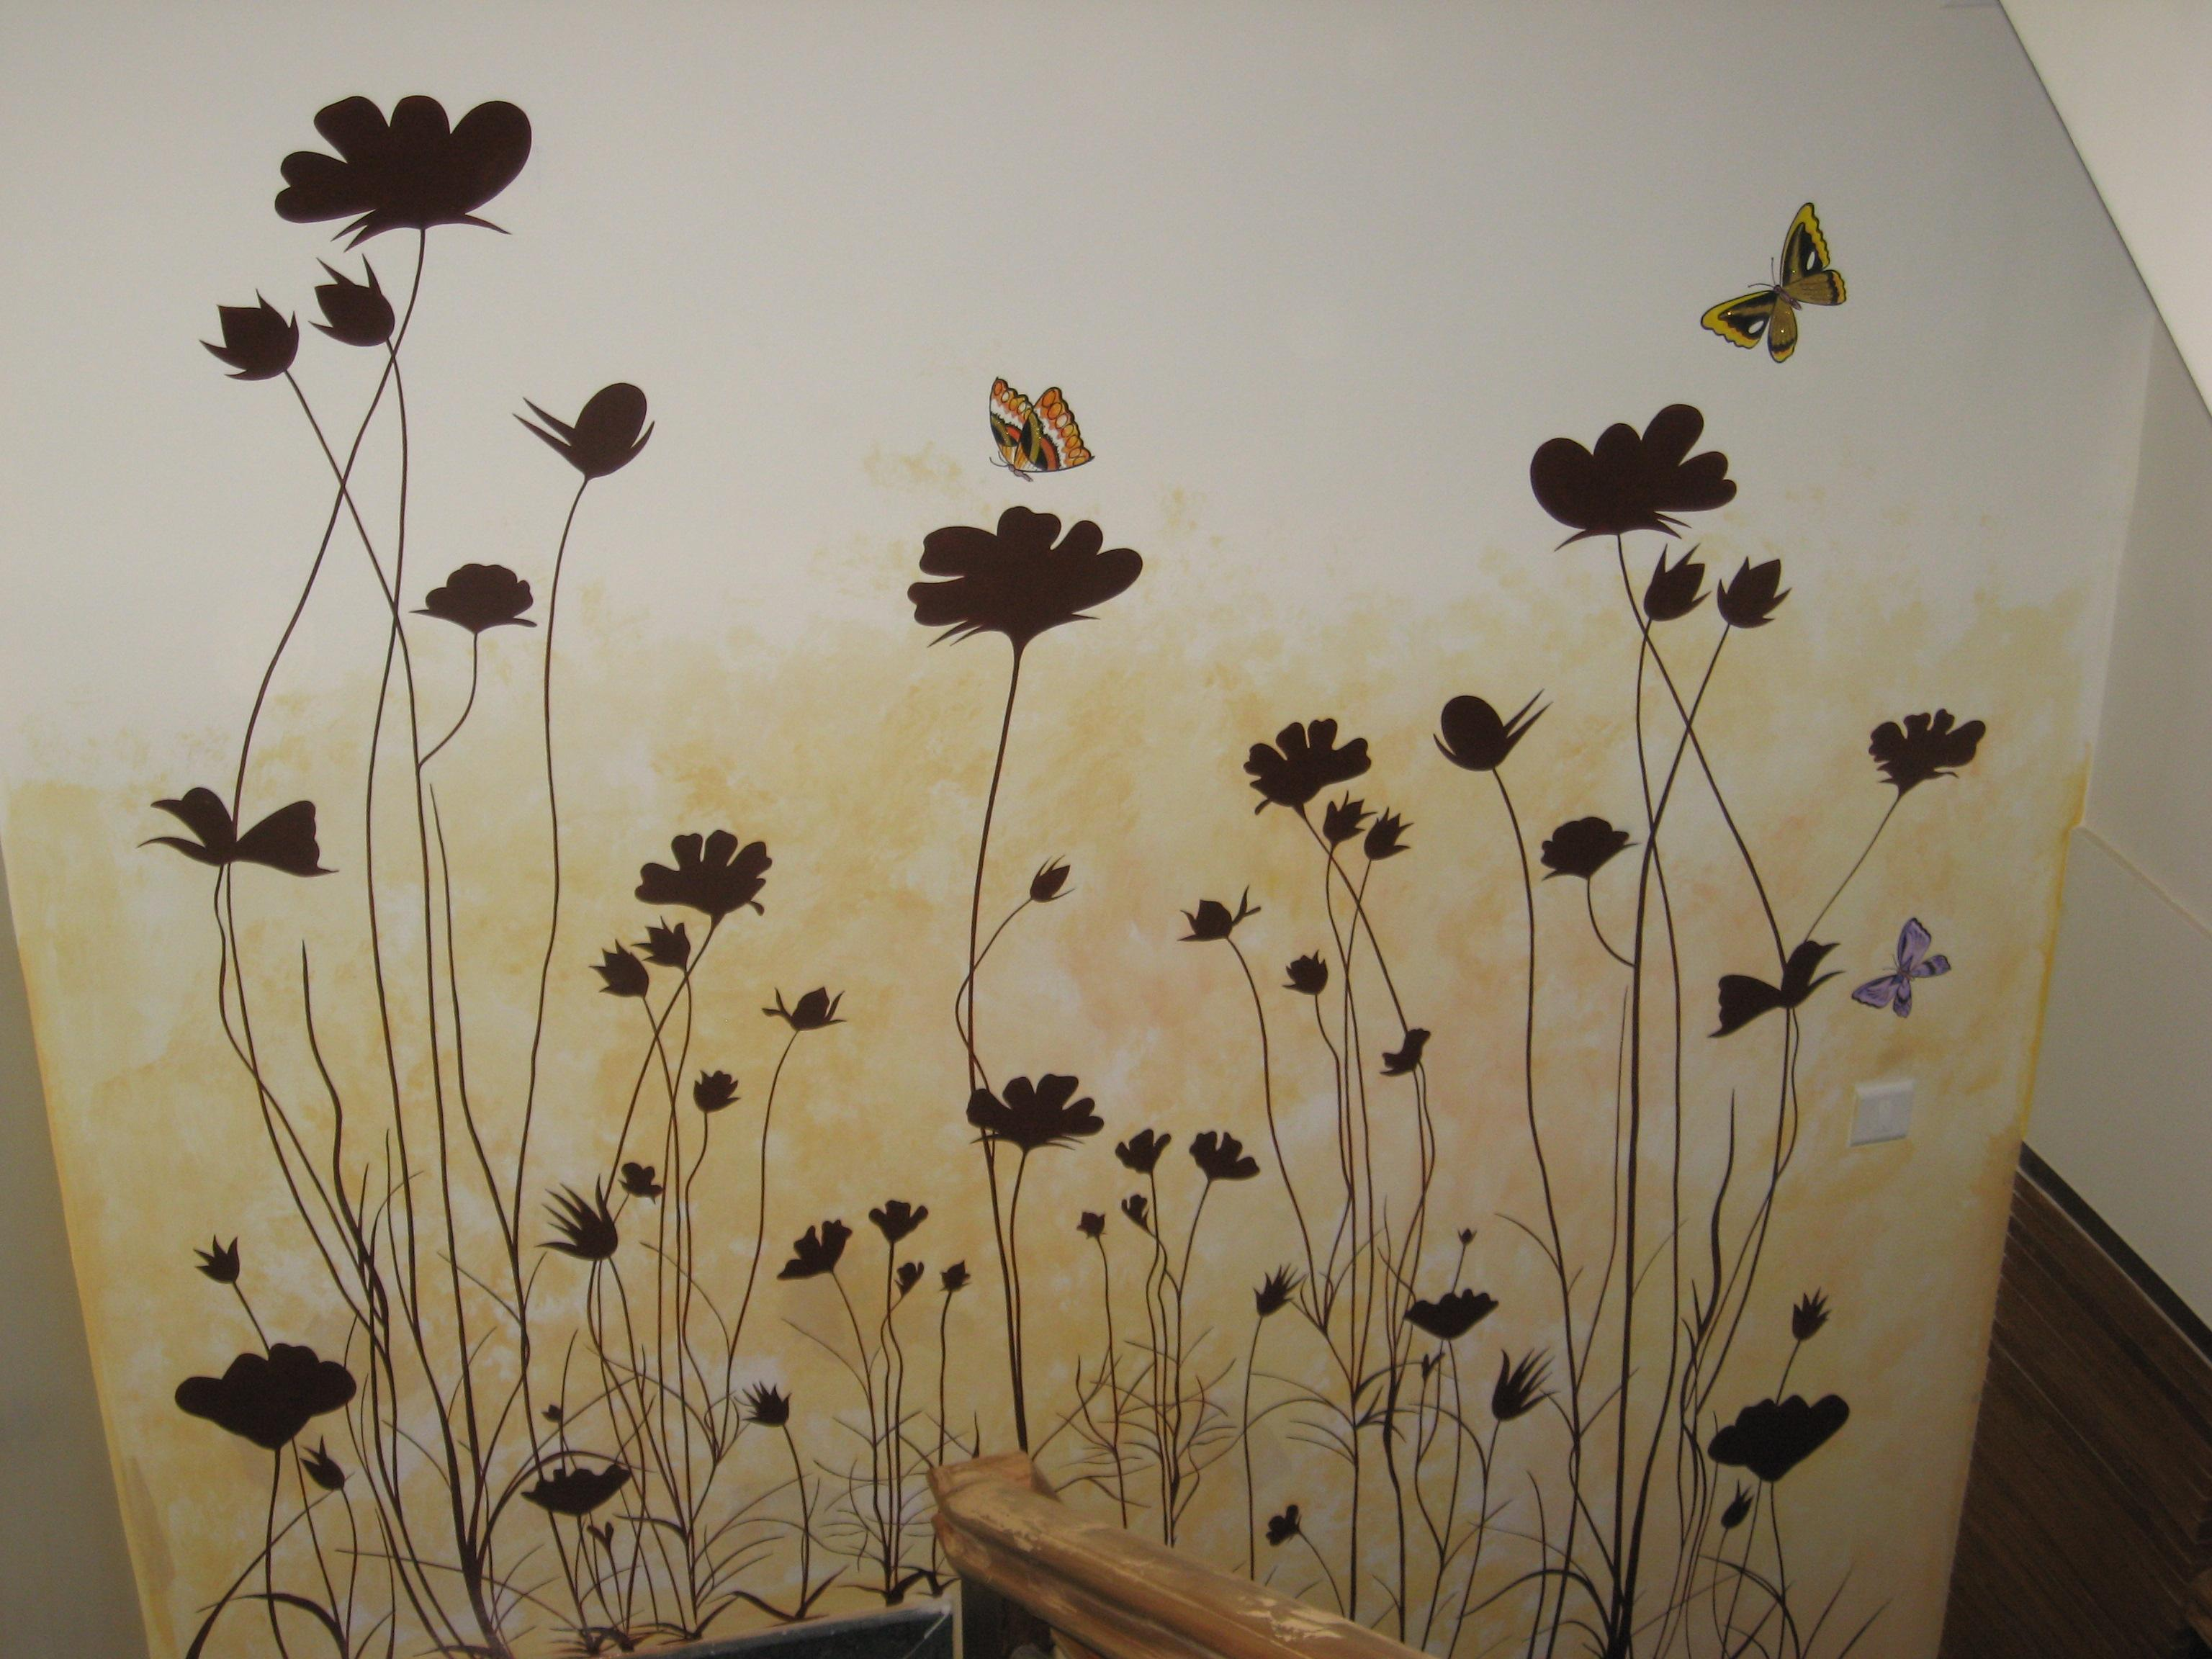 Hand Painting Designs On Walls : This is hand made wall paint design. You can paint wall with your any ...